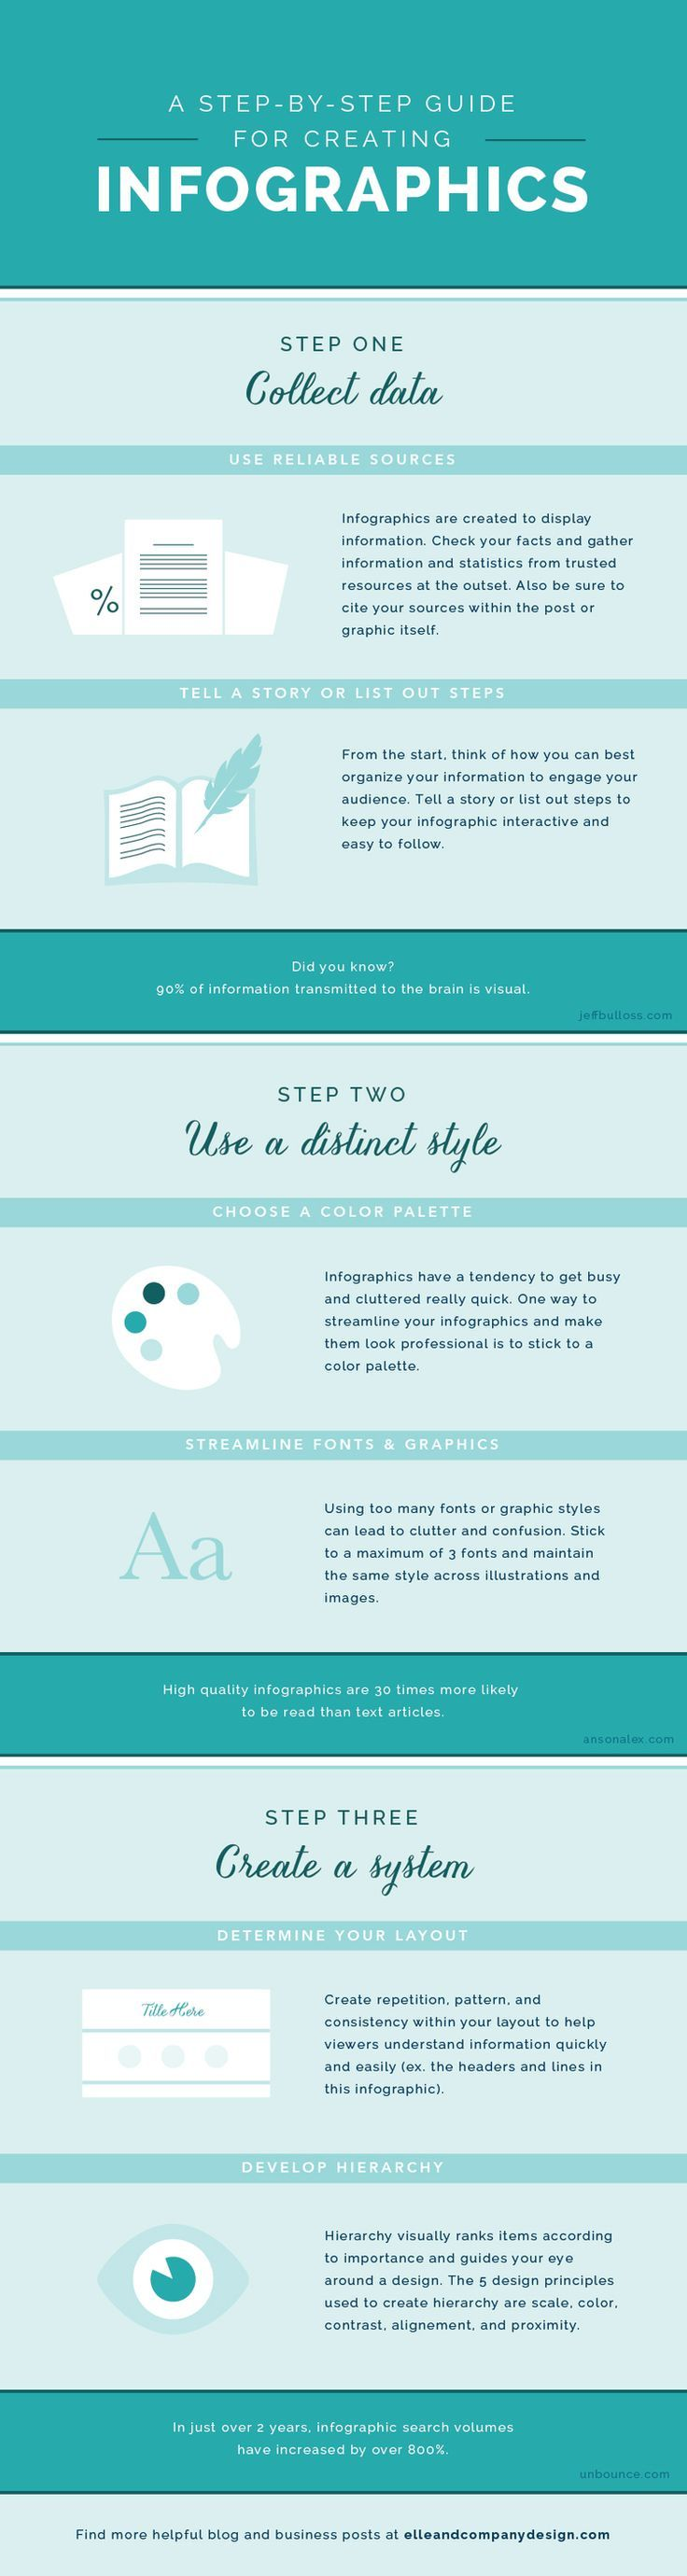 A Step-By-Step Guide for Creating Infographics for your blog posts.